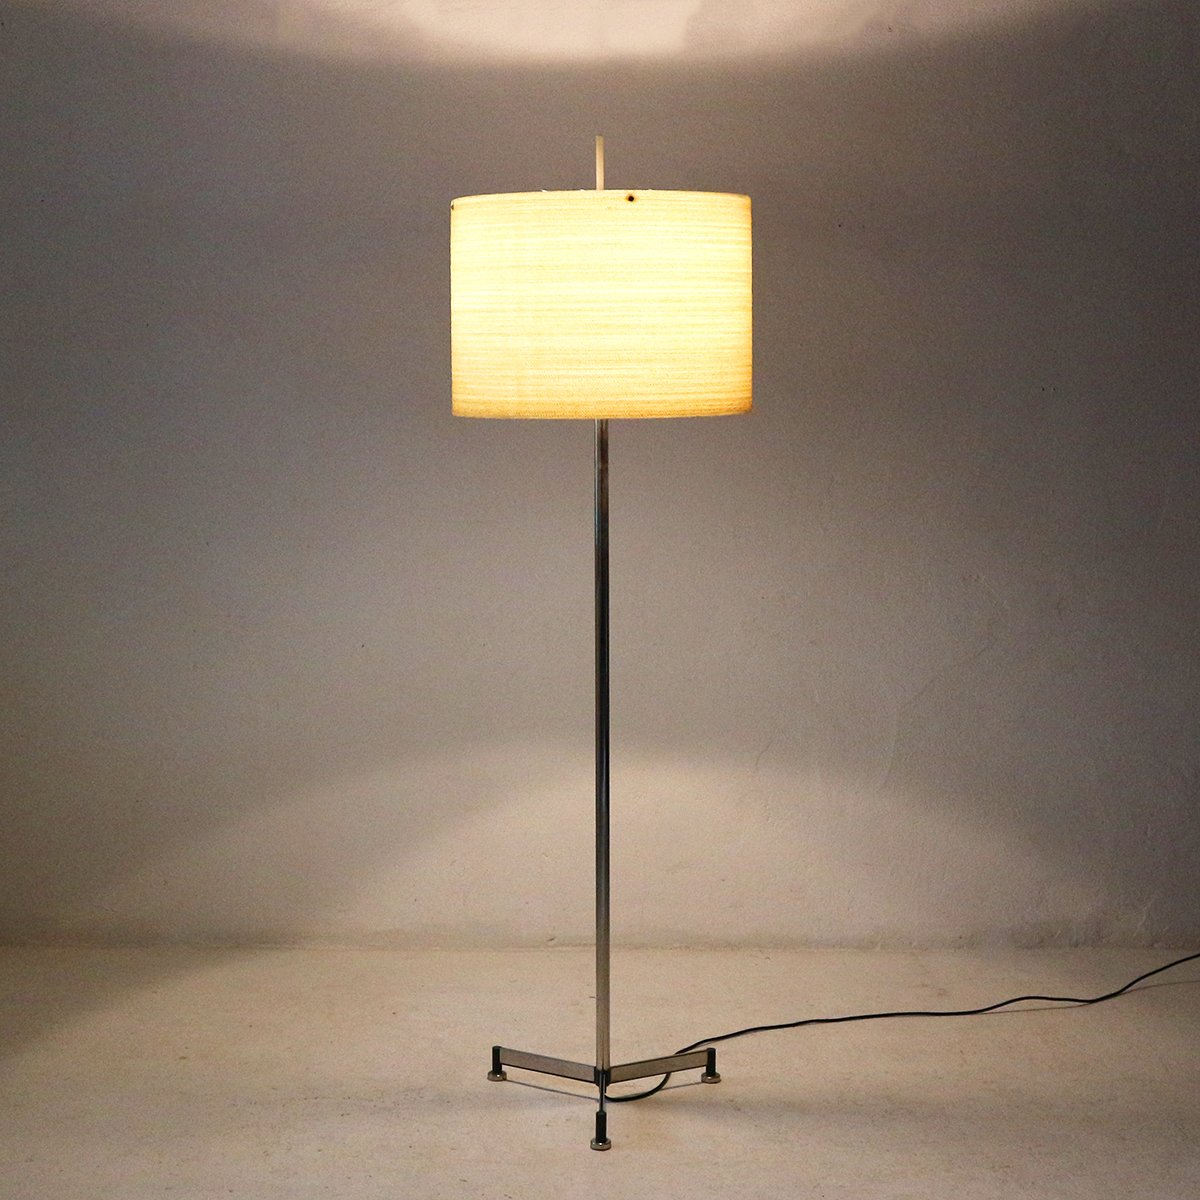 Tripod Floor Lamps Sale Tripod Floor Lamp 1960s For Sale At Pamono